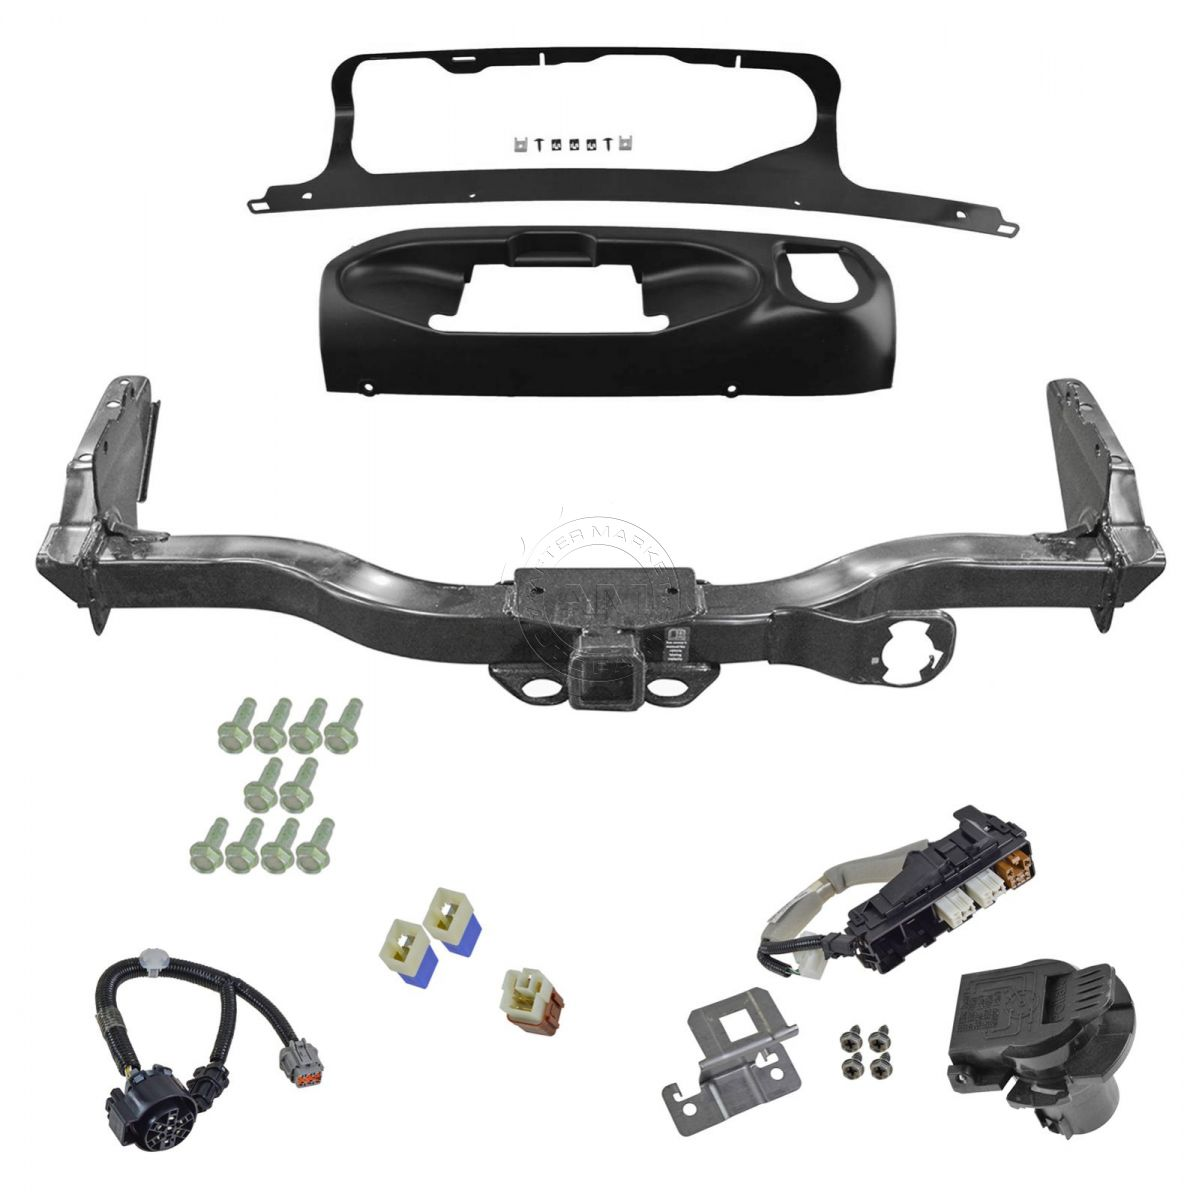 oem trailer tow hitch receiver w harness and finisher kit. Black Bedroom Furniture Sets. Home Design Ideas